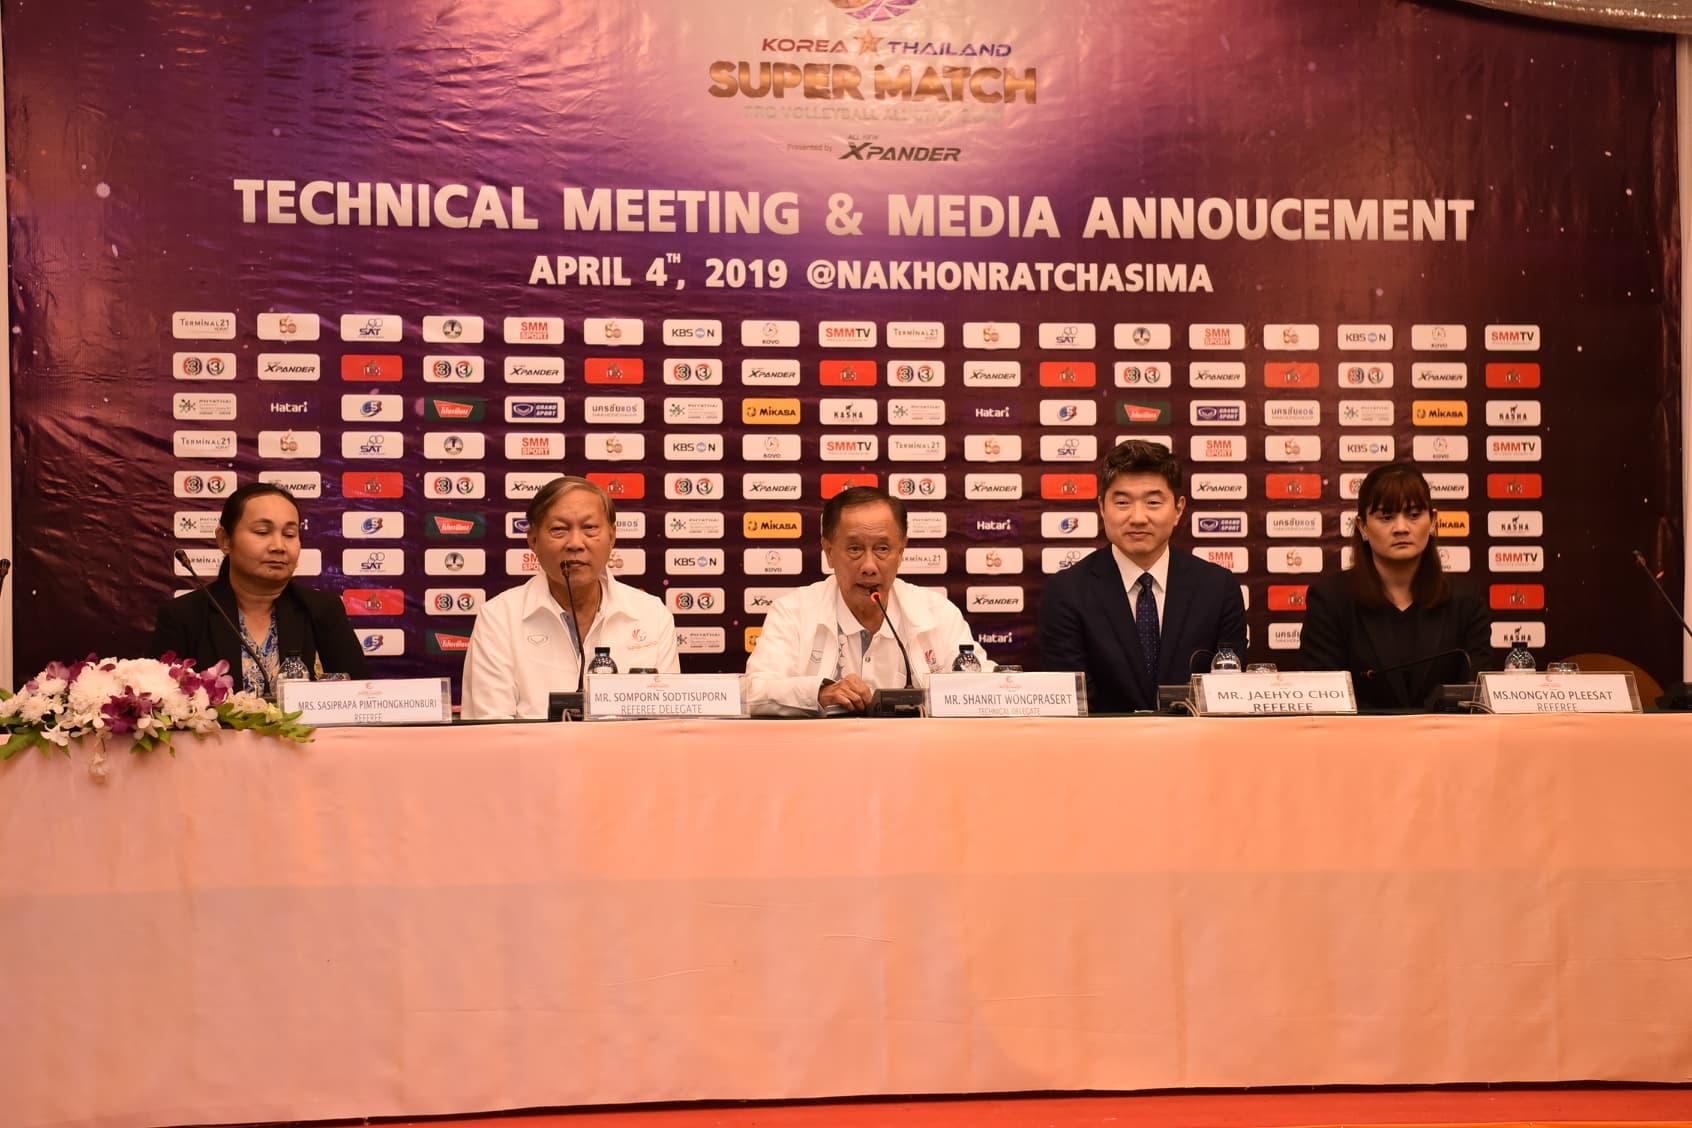 KOREA-THAILAND PRO ALL-STAR SUPER MATCH TO BE HELD FRIDAY